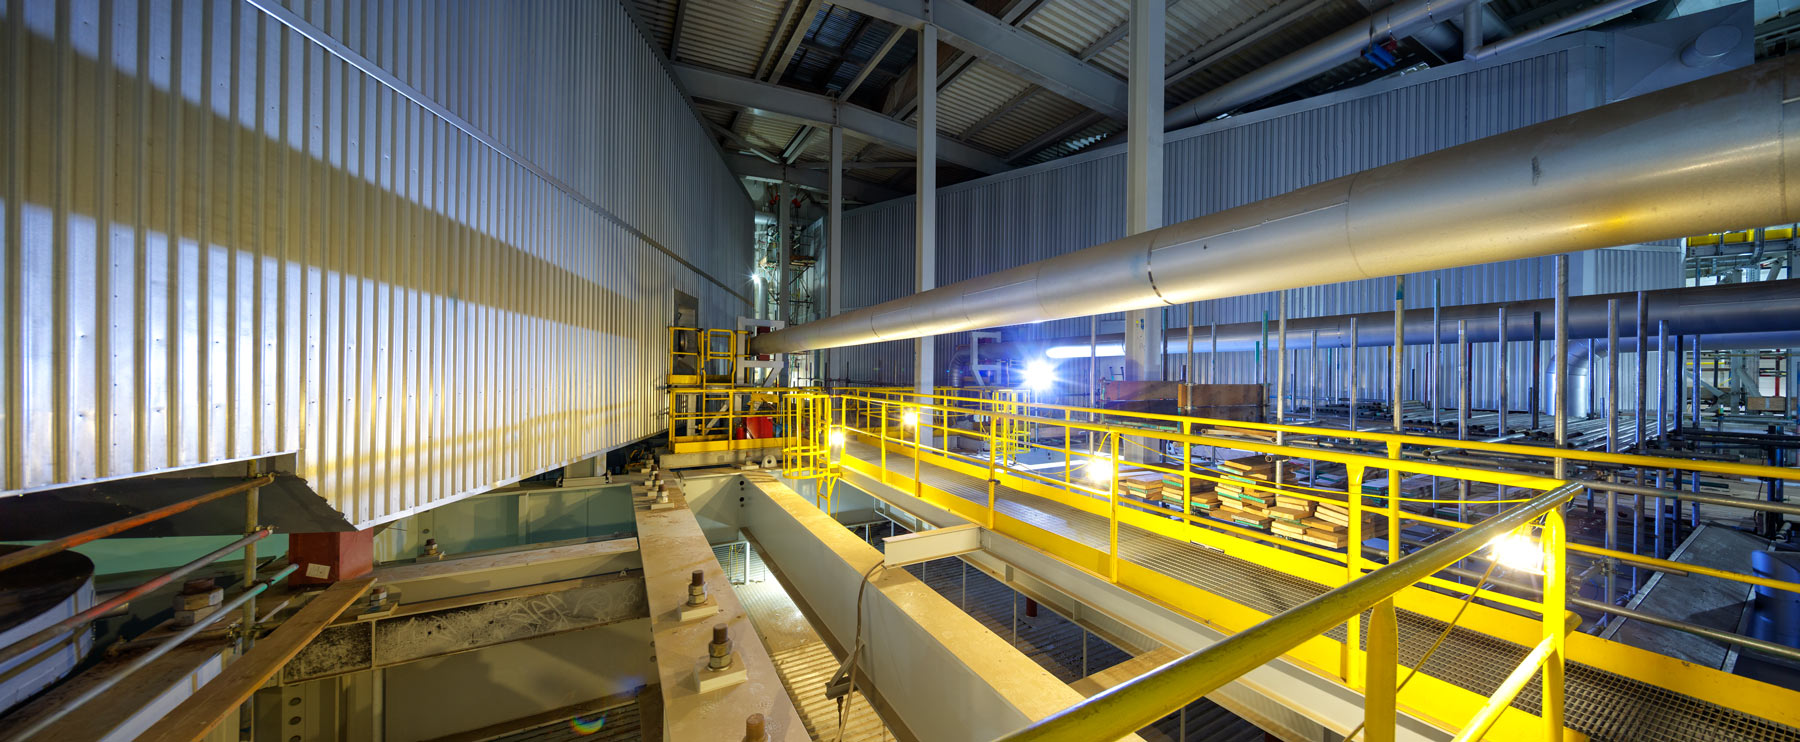 commercial-photography-intrenal-power-plant